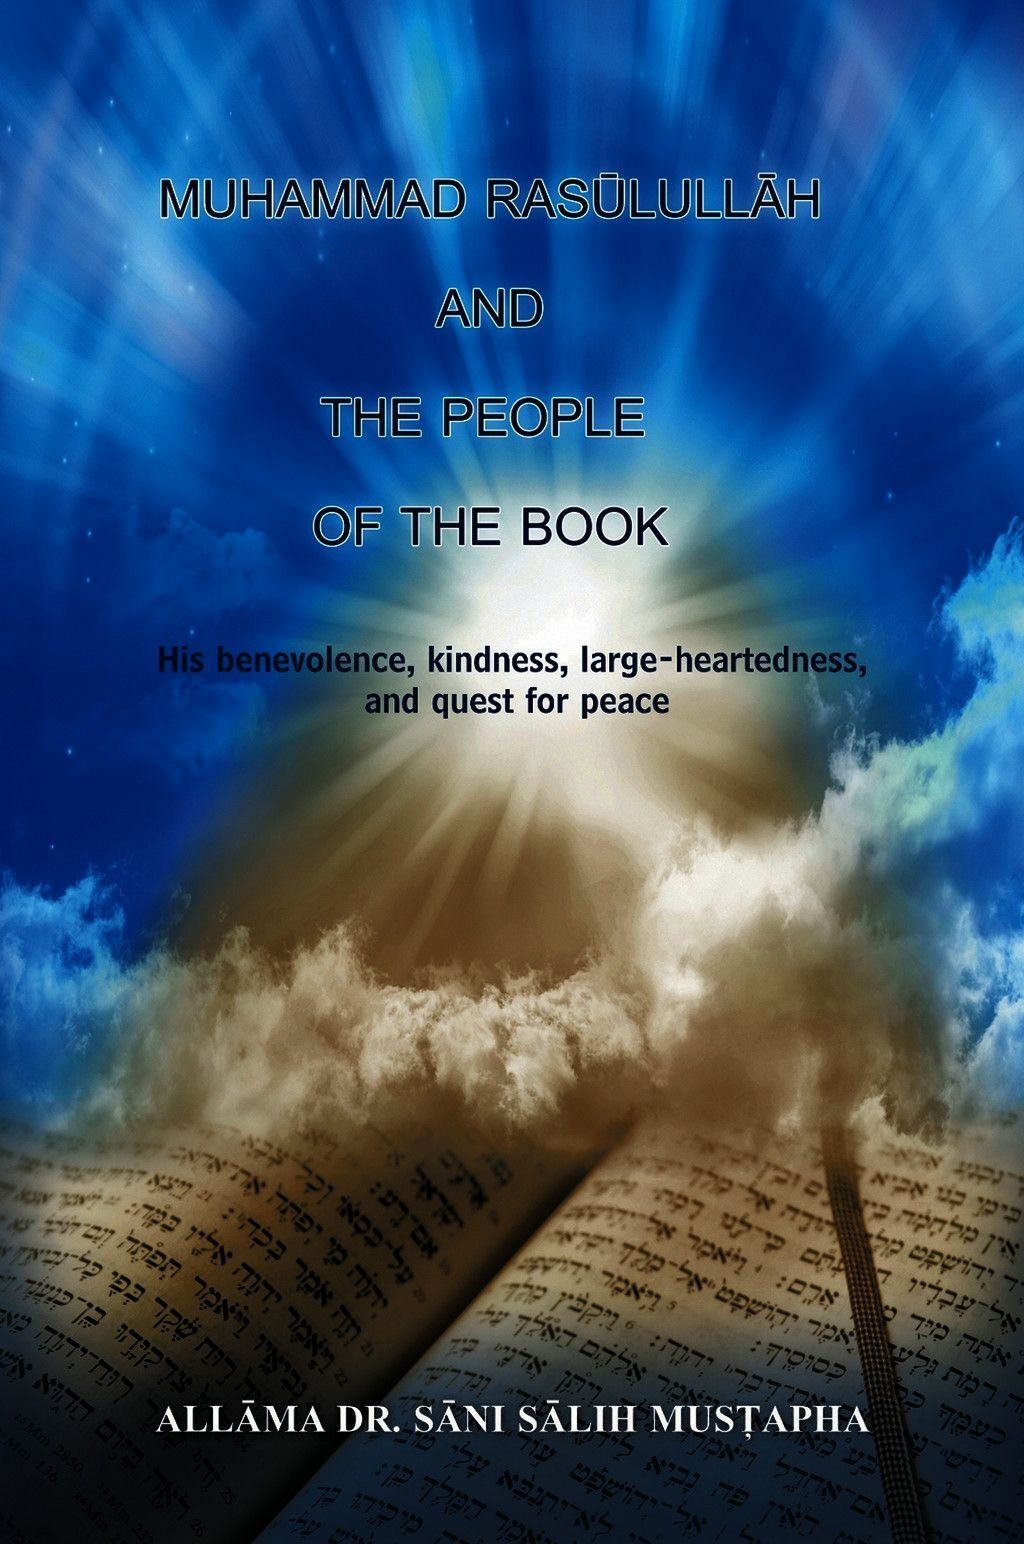 Muhammad Rasulullah And The People Of The Book